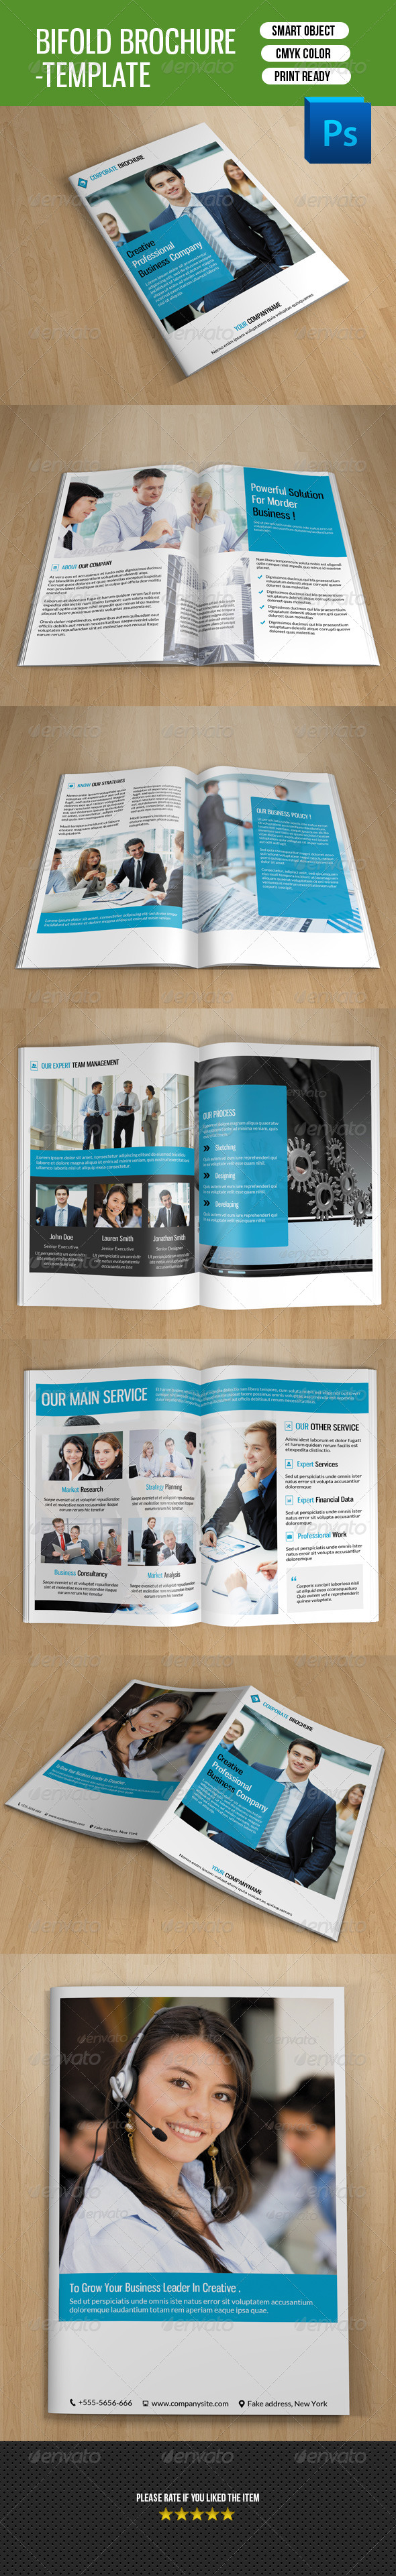 GraphicRiver Bifold Brochure for Business-V120 8767729